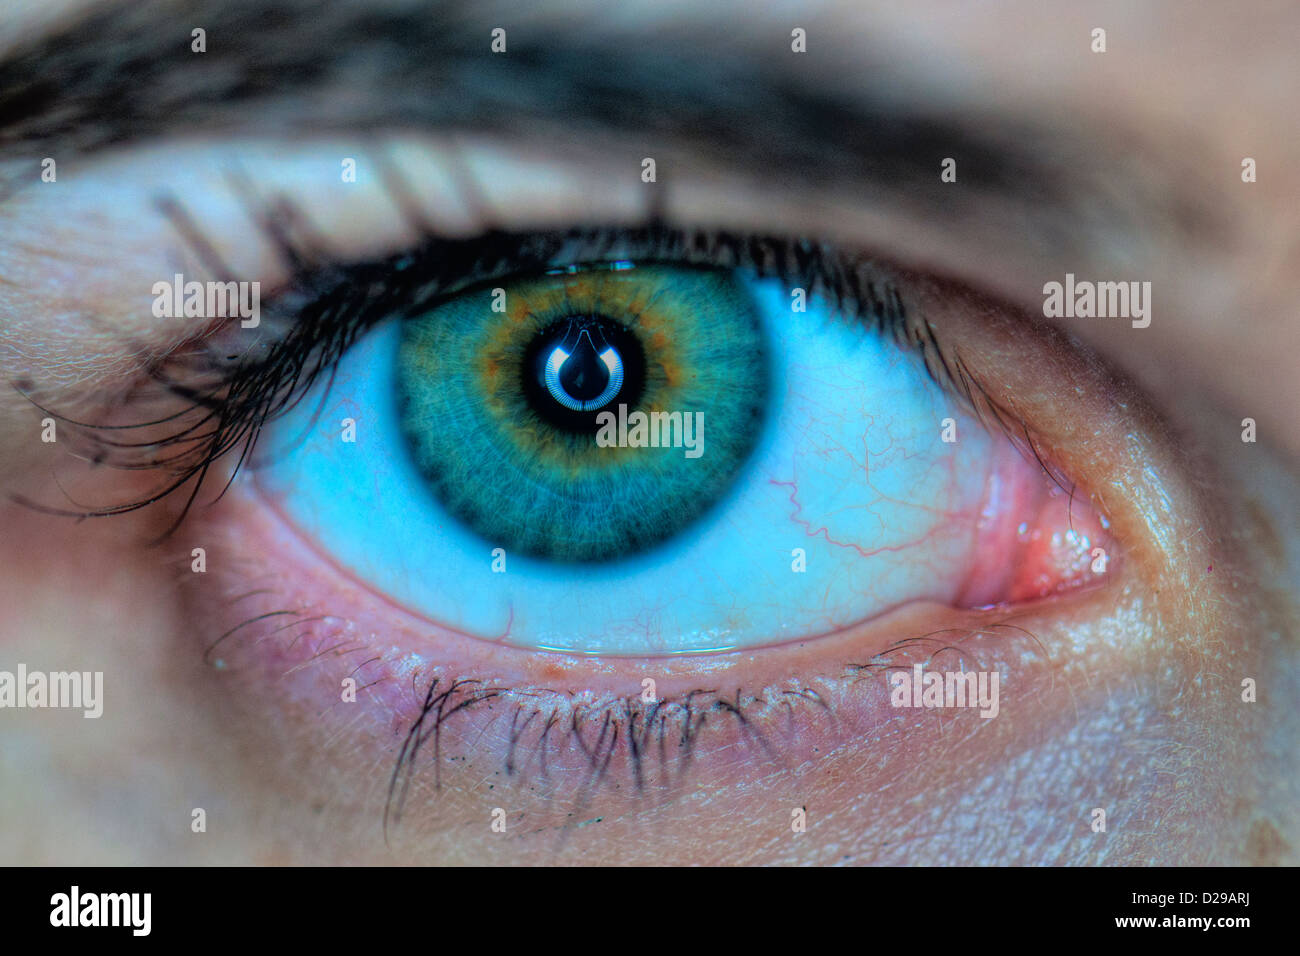 Extreme closeup of a human eye - Stock Image